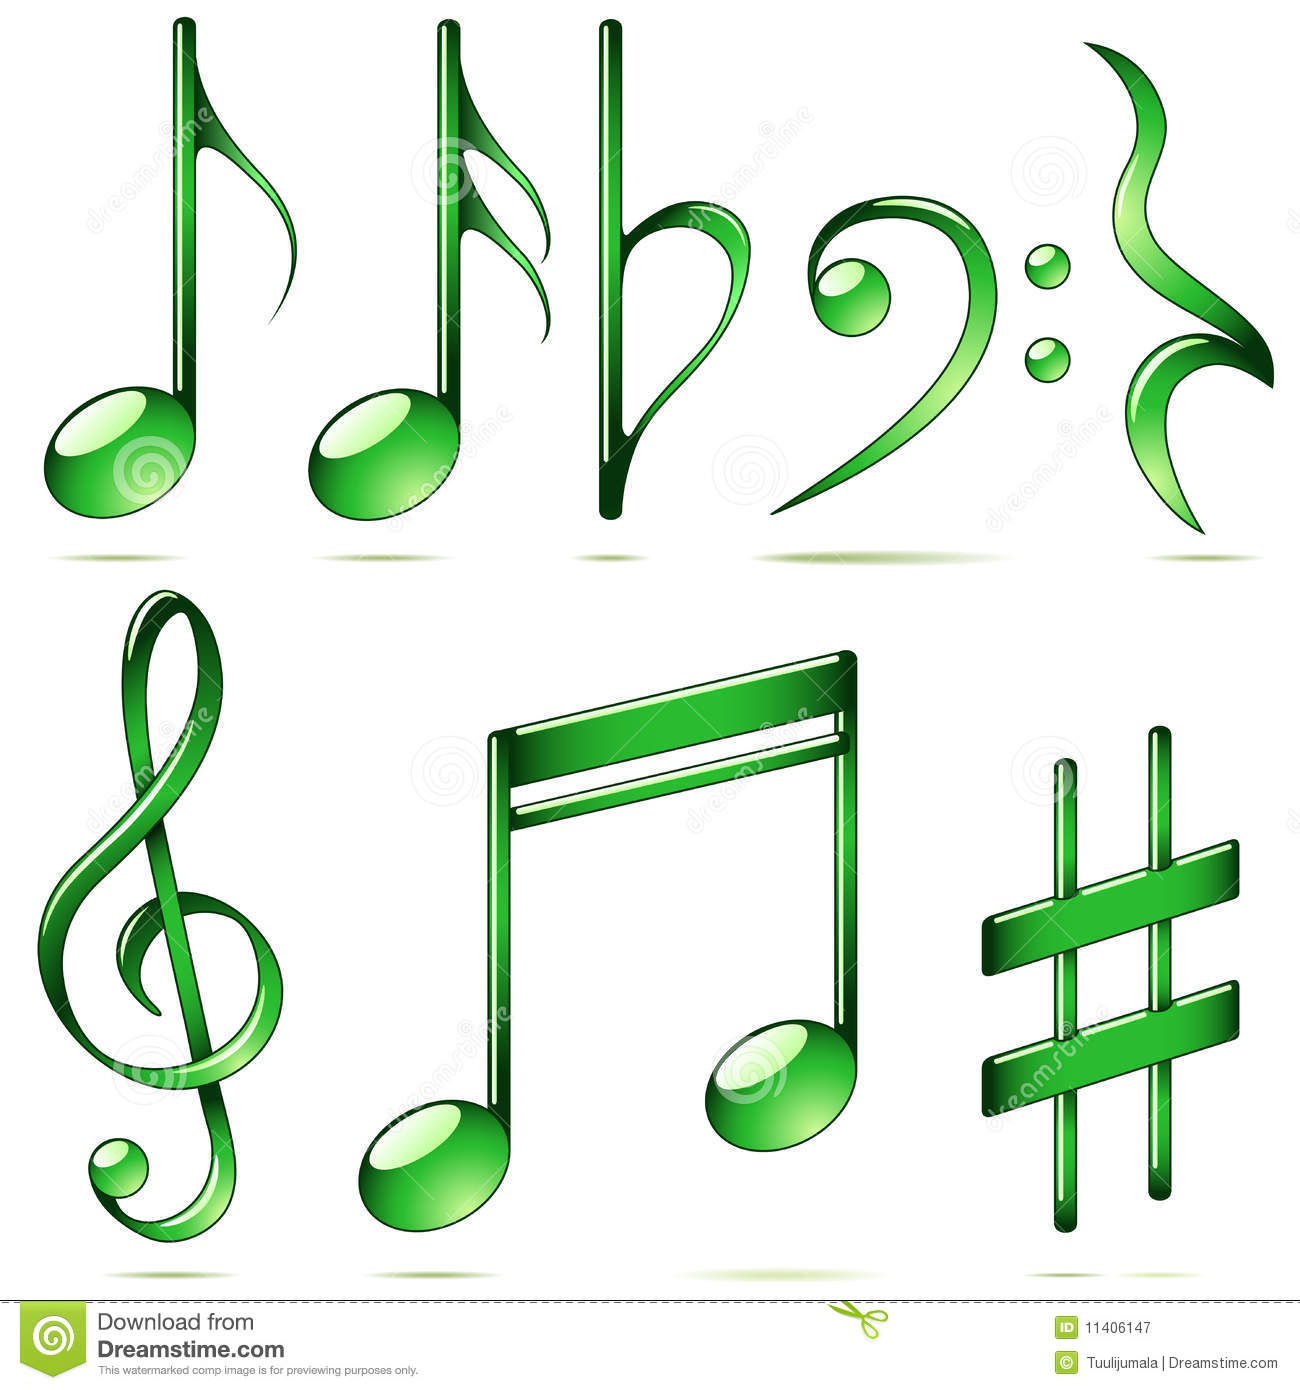 Music notes icons stock vector illustration of abstract 11406147 music notes icons buycottarizona Image collections